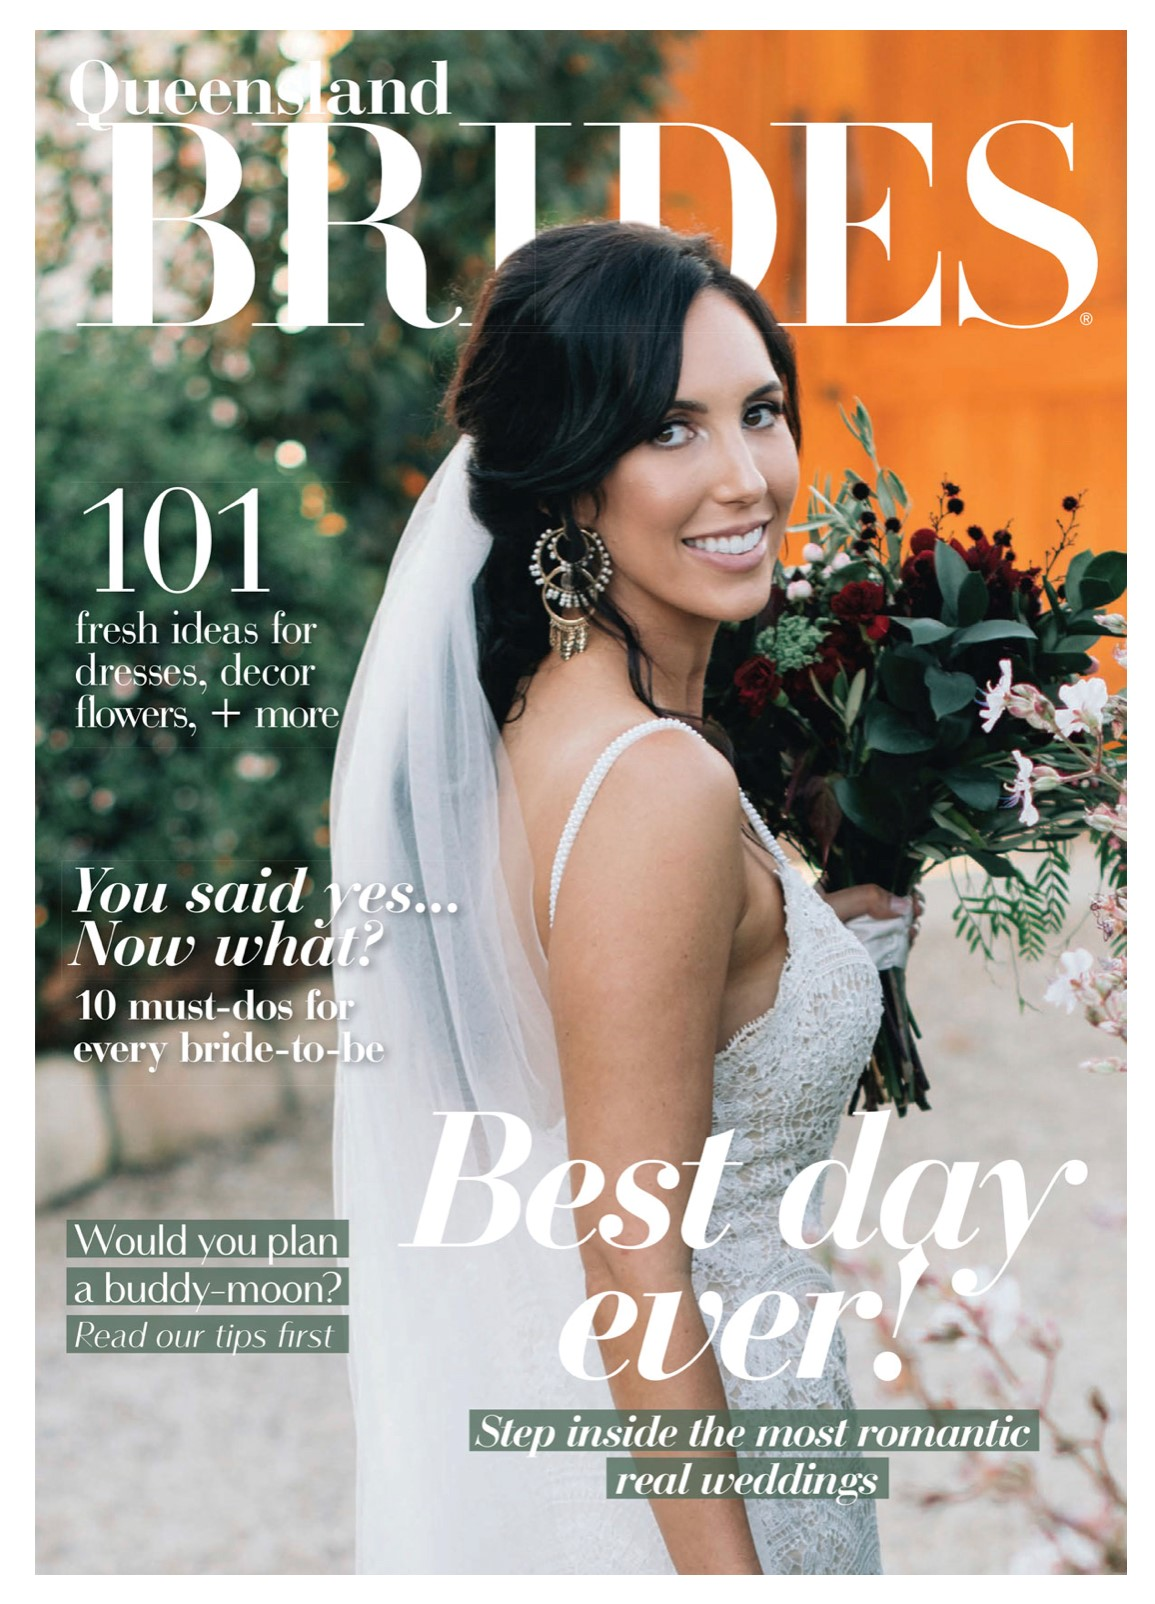 Lauren Yates - Queensland Brides